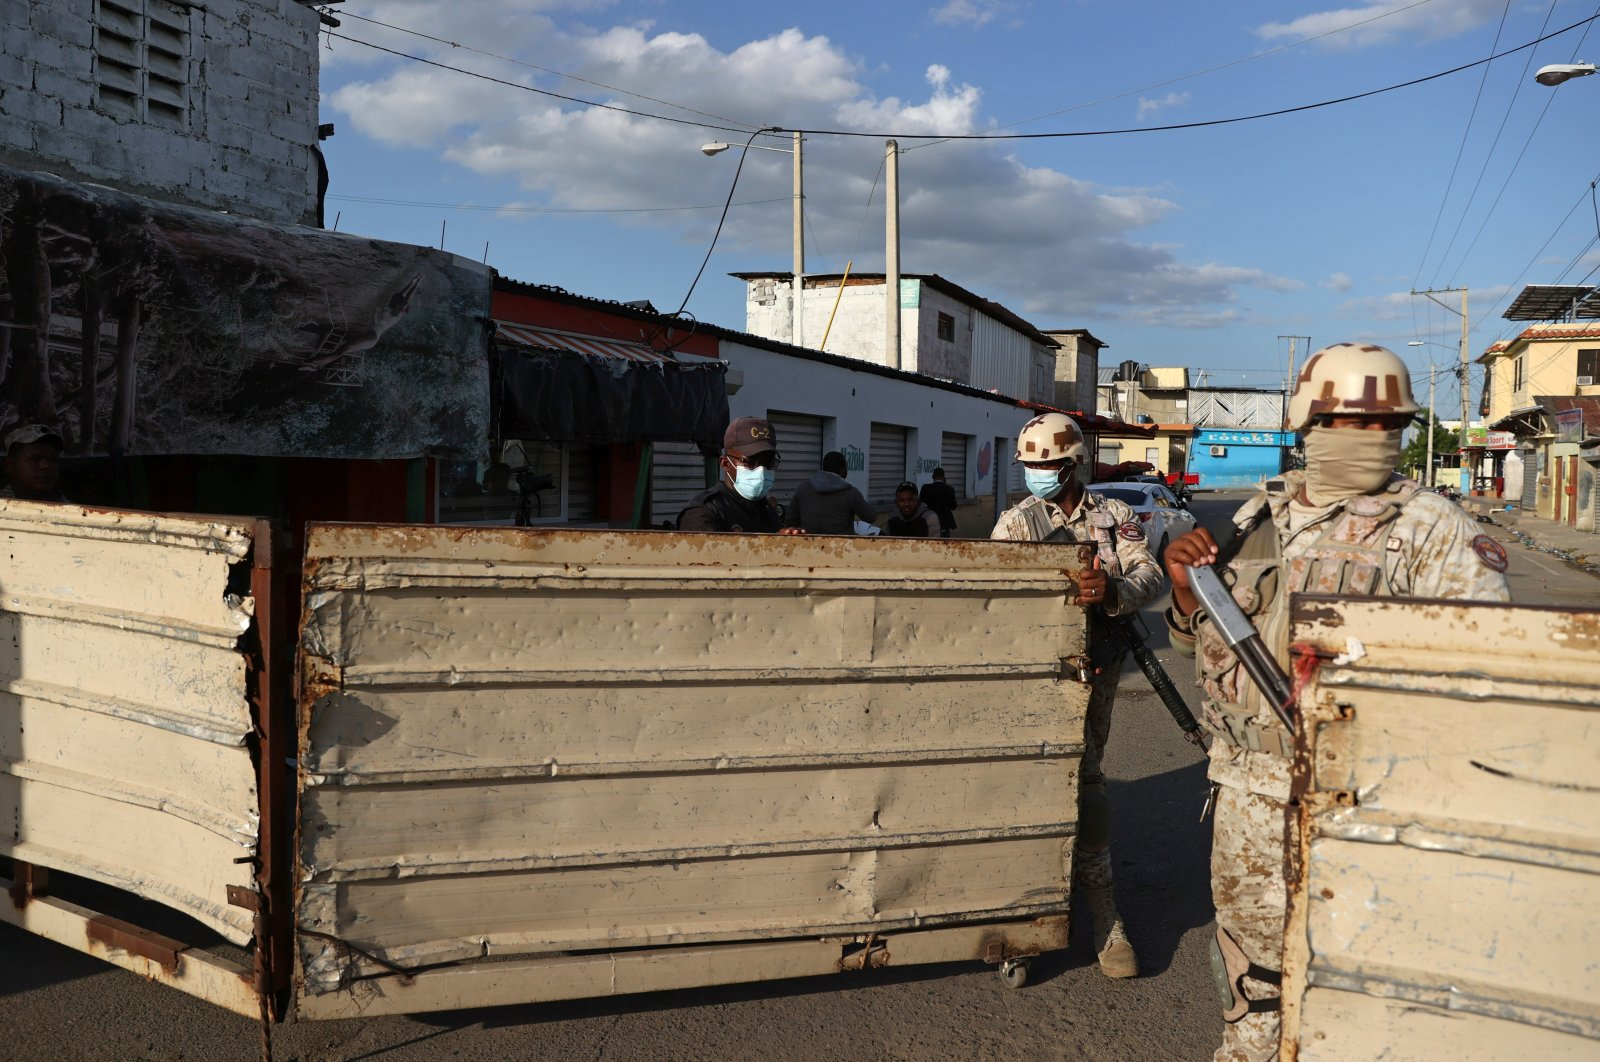 Members of the Dominican Republic's National Army guard the shared border between the Dominican Republic and Haiti, after it was closed when Haiti's President Jovenel Moise was shot dead by gunmen at his private home in Port-au-Prince, in Dajabon, Dominican Republic, July 7, 2021. (Reuters Photo)